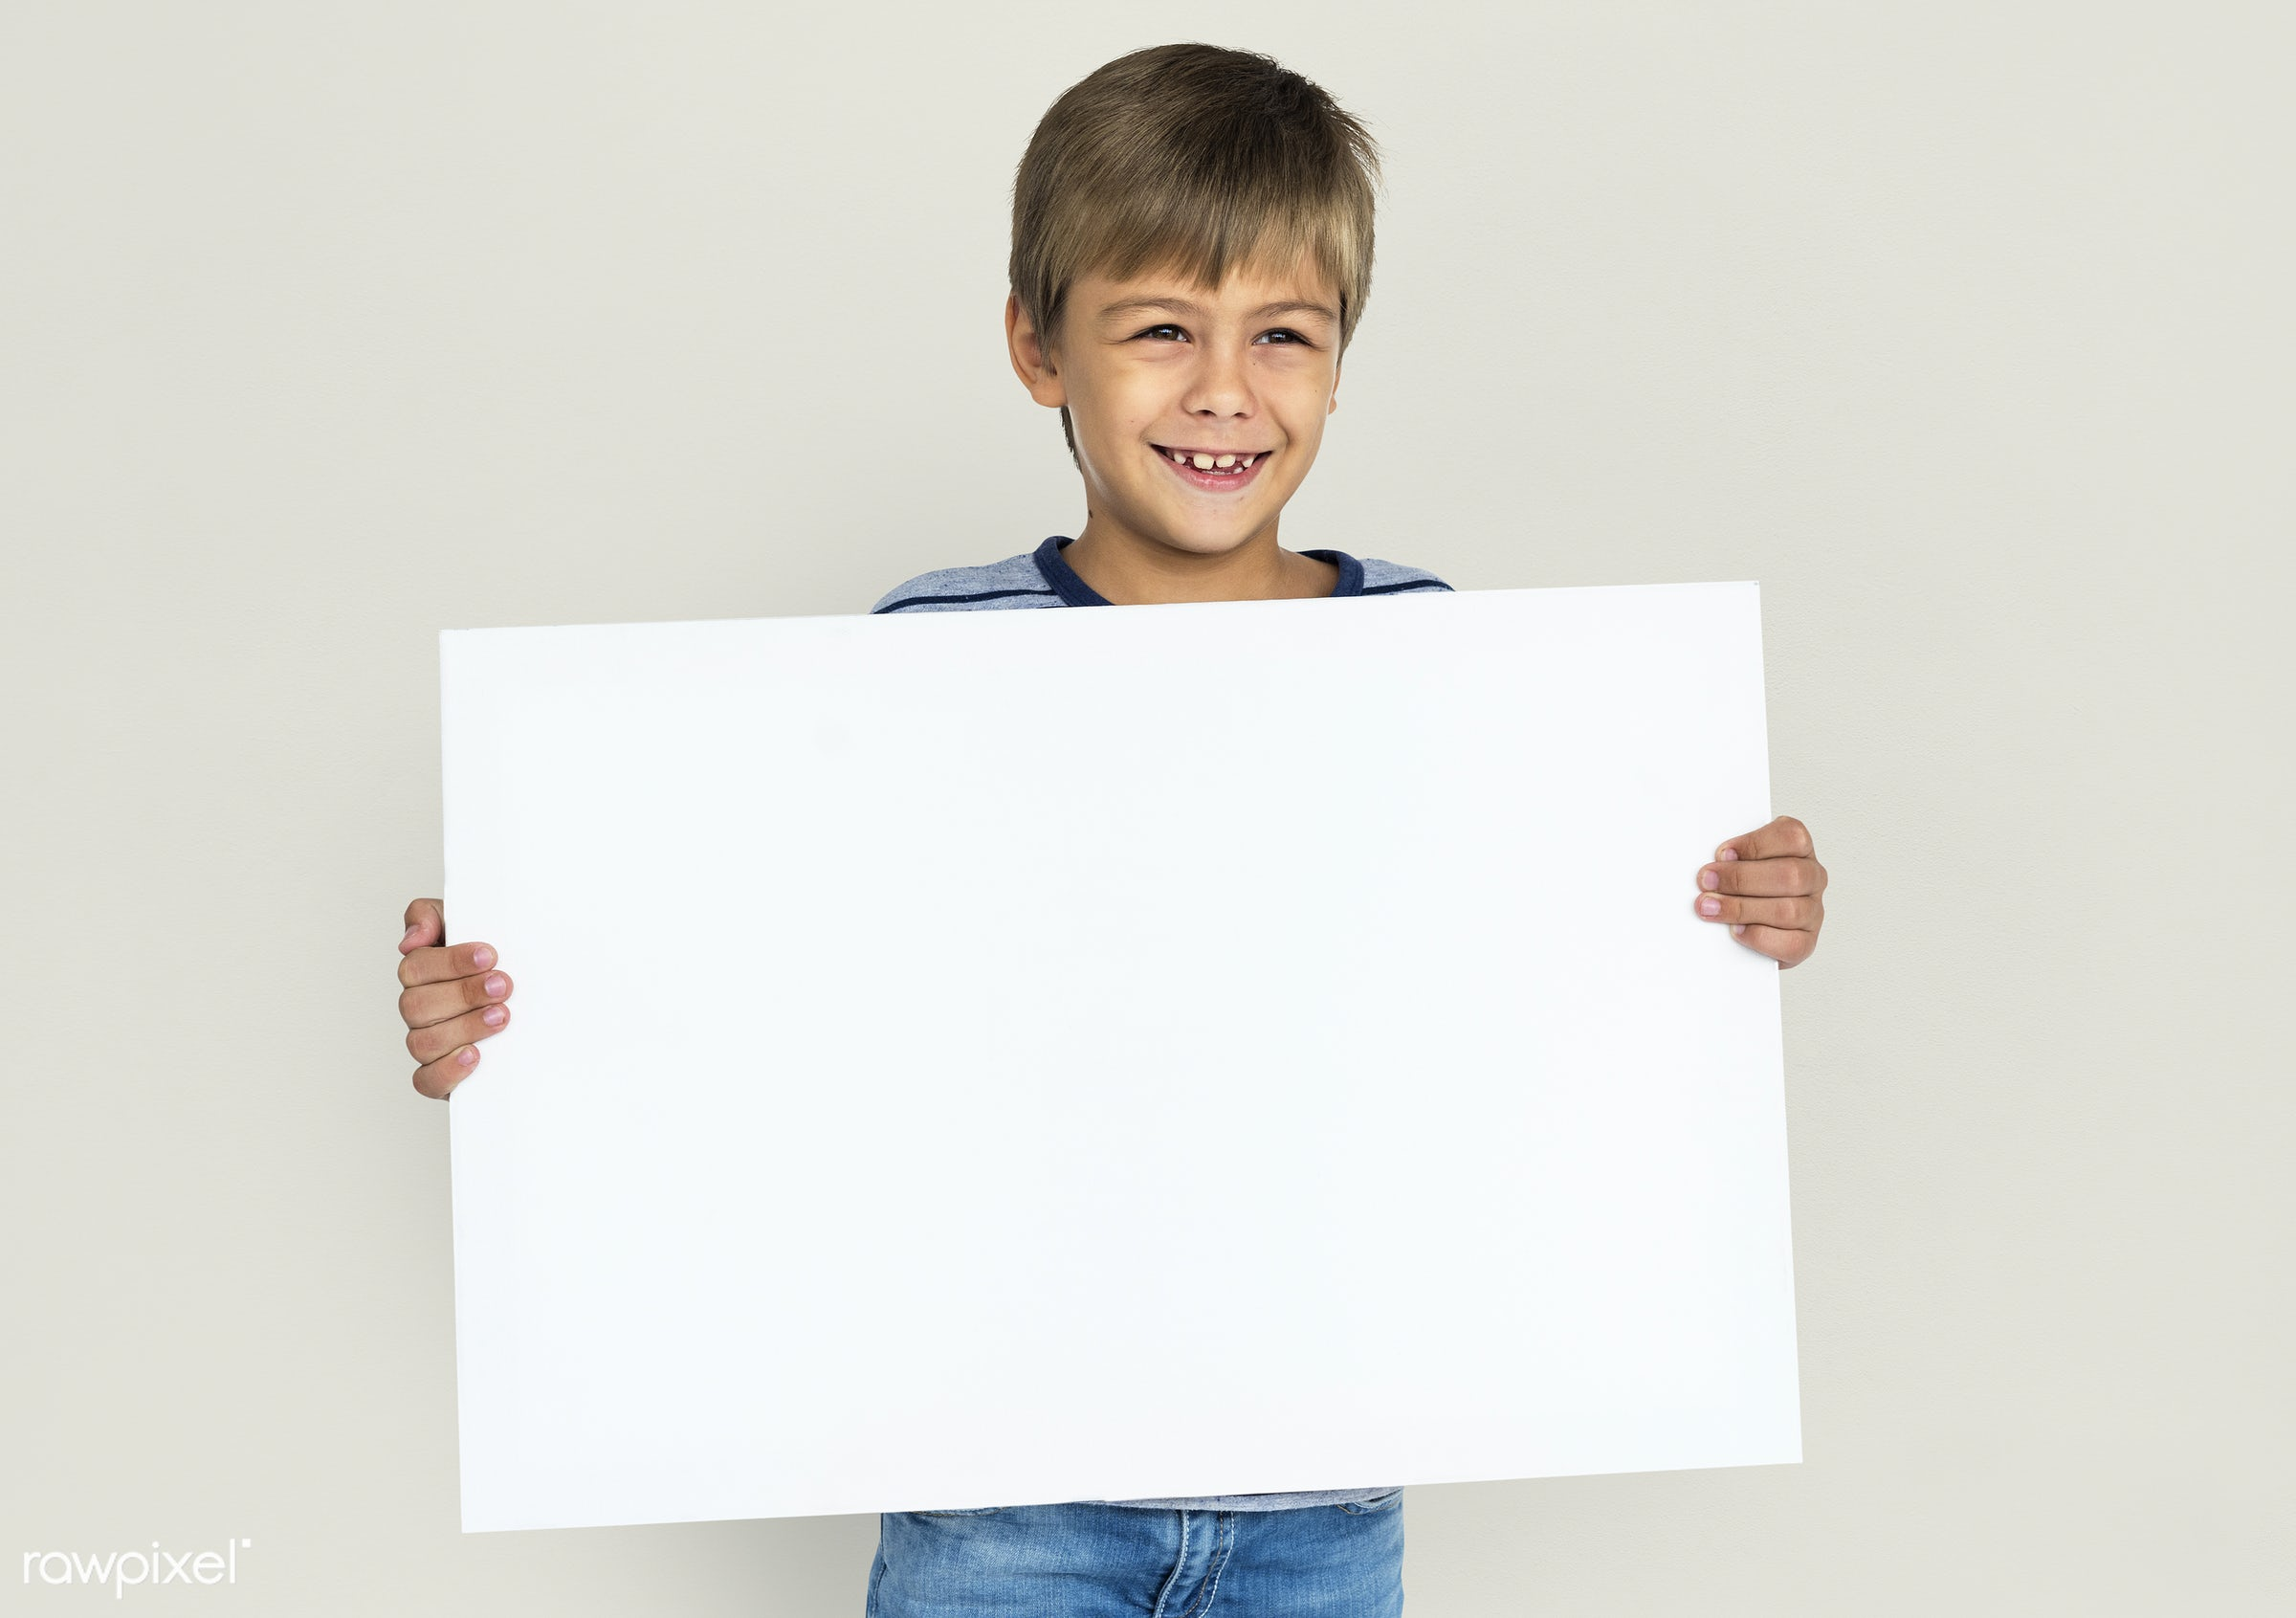 background, blank, boy, candid, casual, caucasian, cheerful, child, copy space, emotion, expression, fun, guy, happiness,...